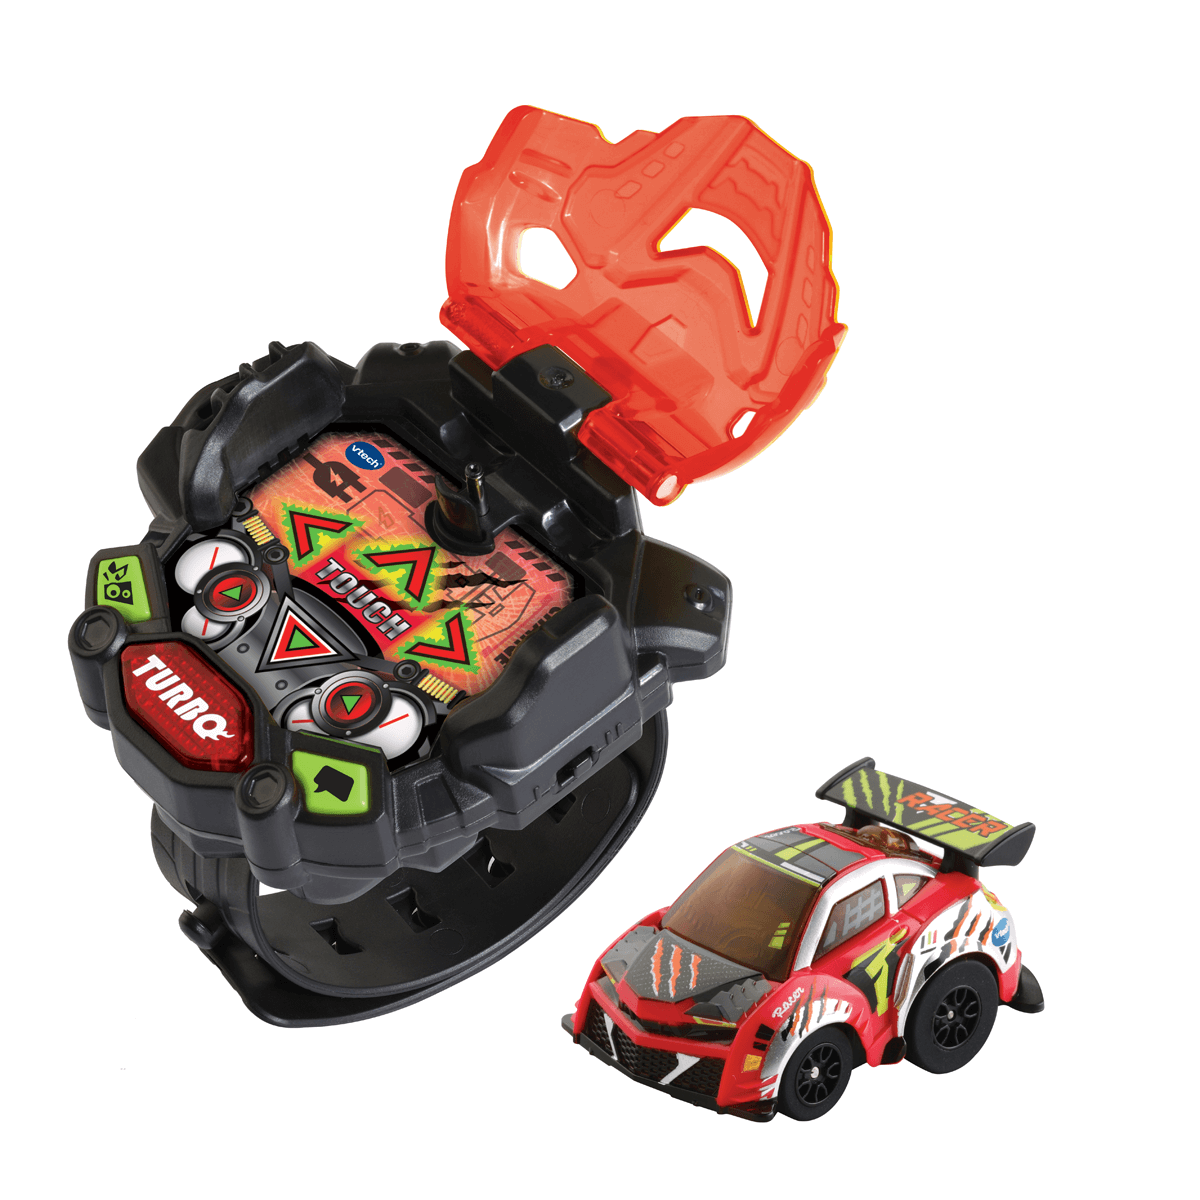 VTech Turbo Force Racer - Red from Early Learning Center